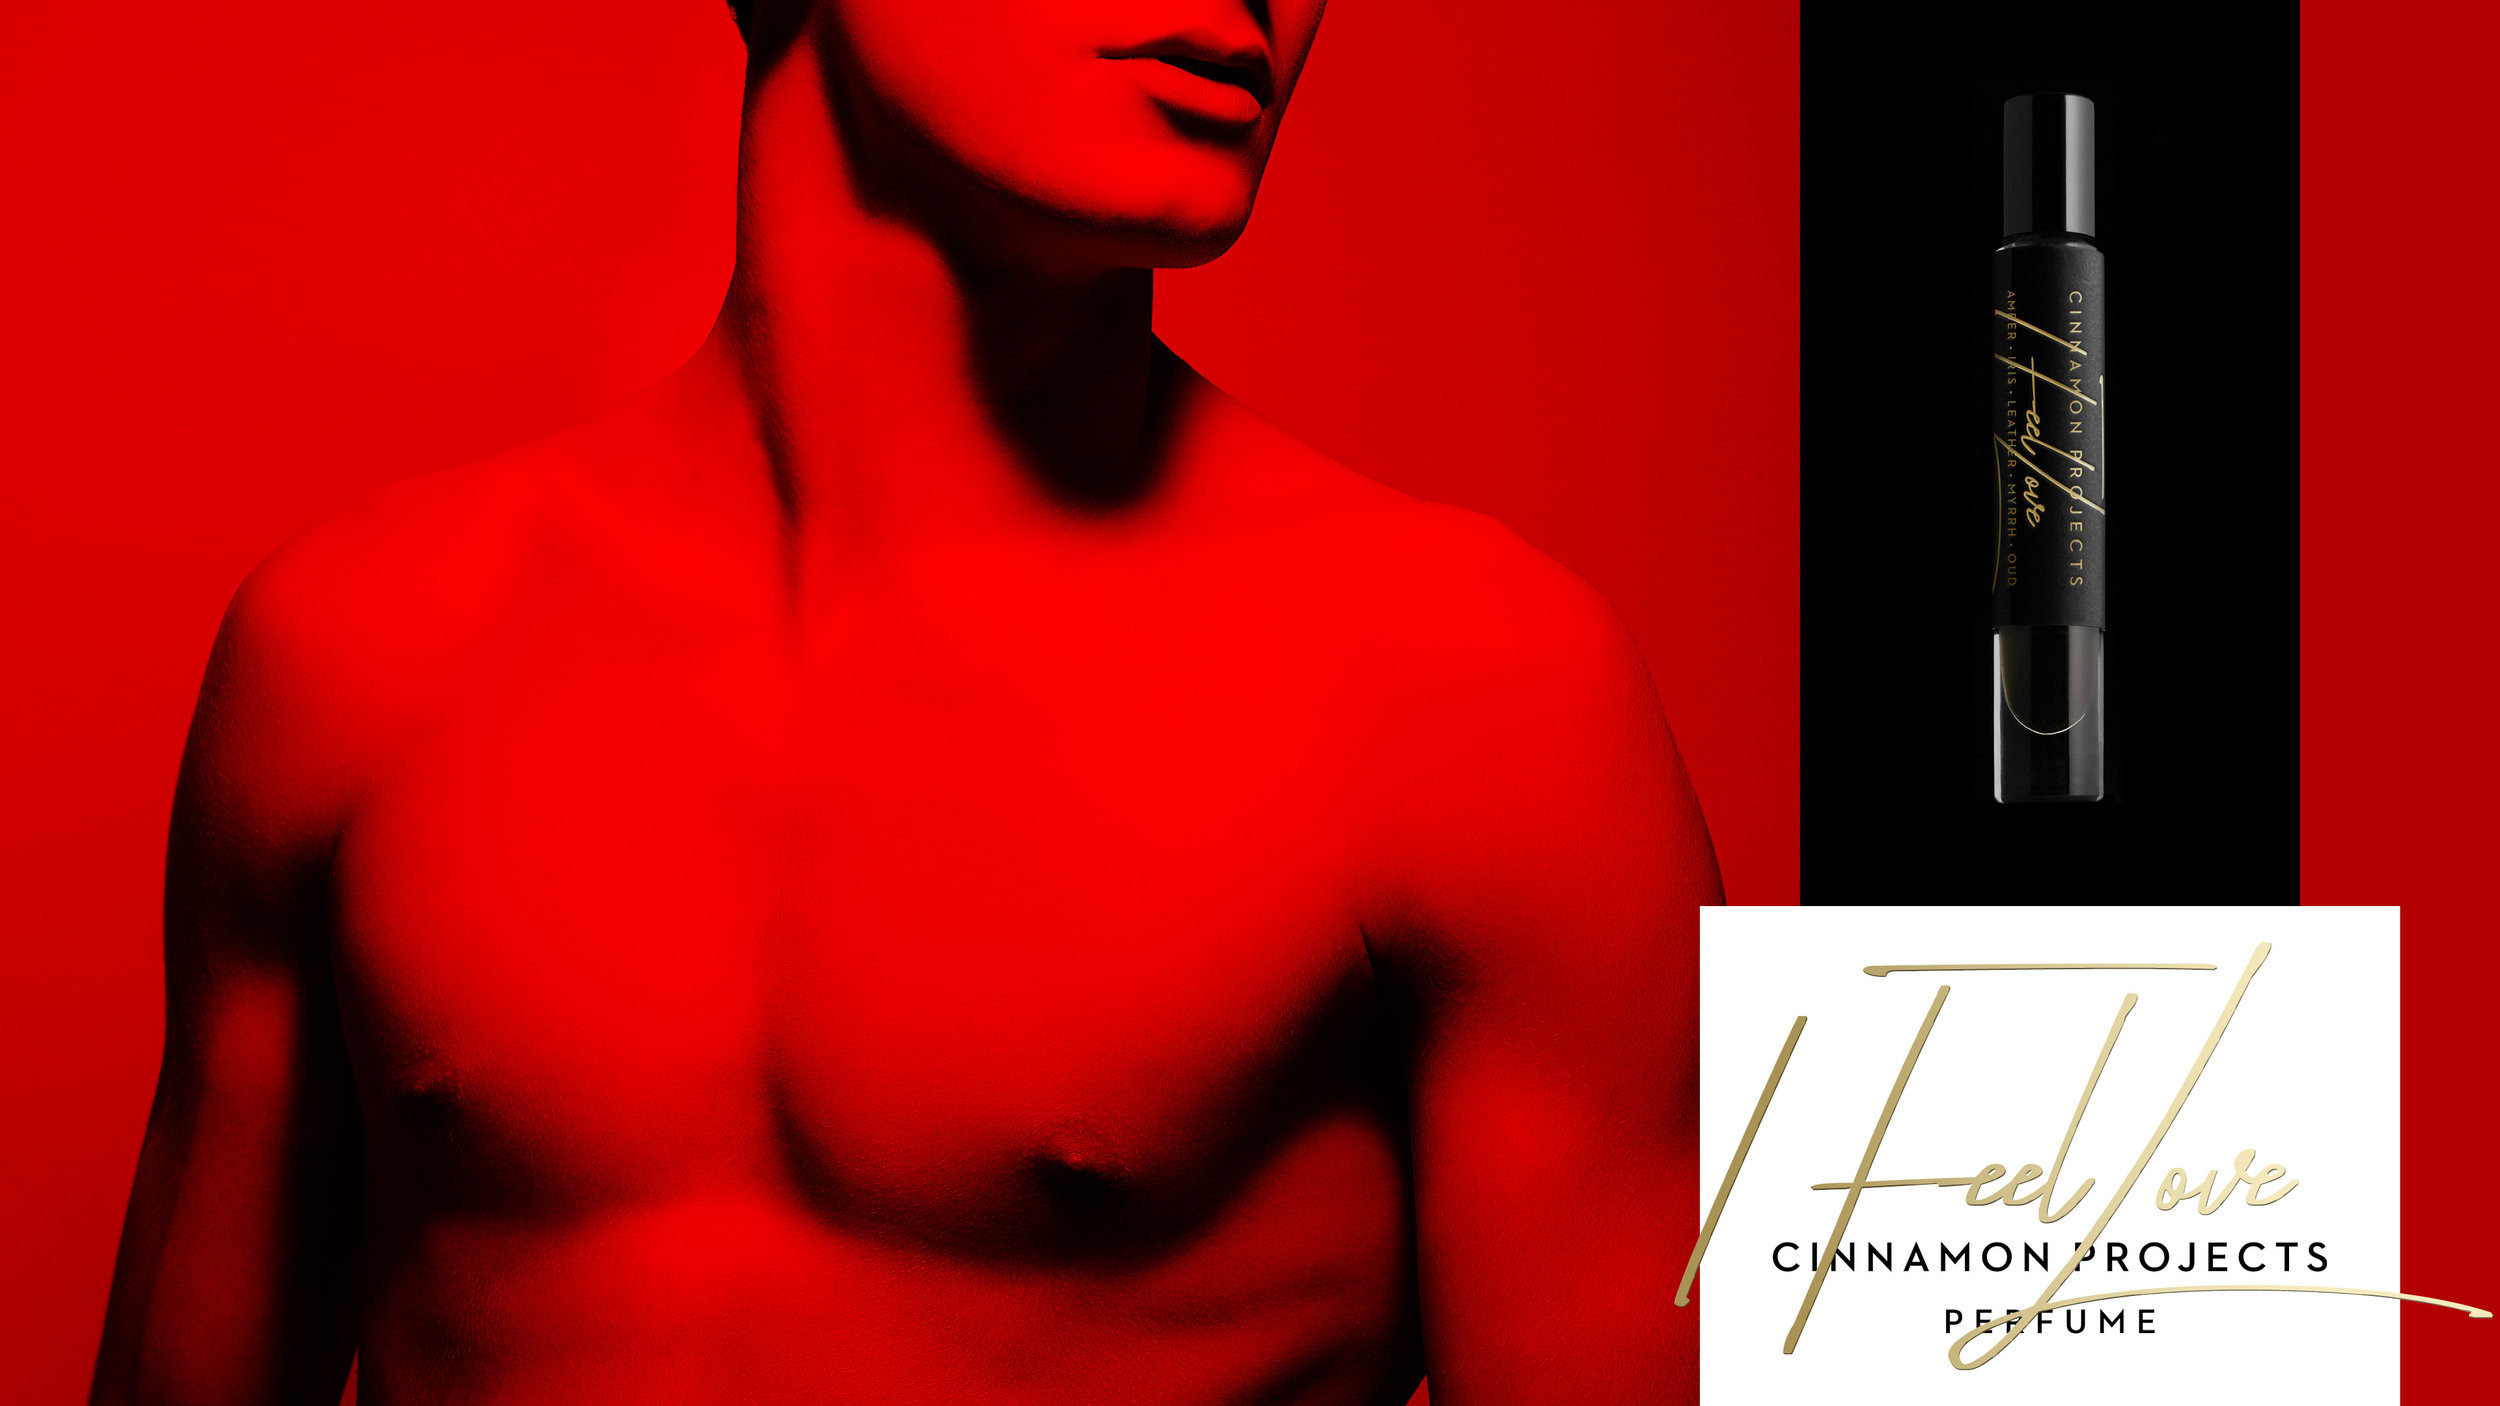 CINNAMON_PROJECTS_PERFUME_I-FEEL-LOVE_AD_1920X1080.jpg